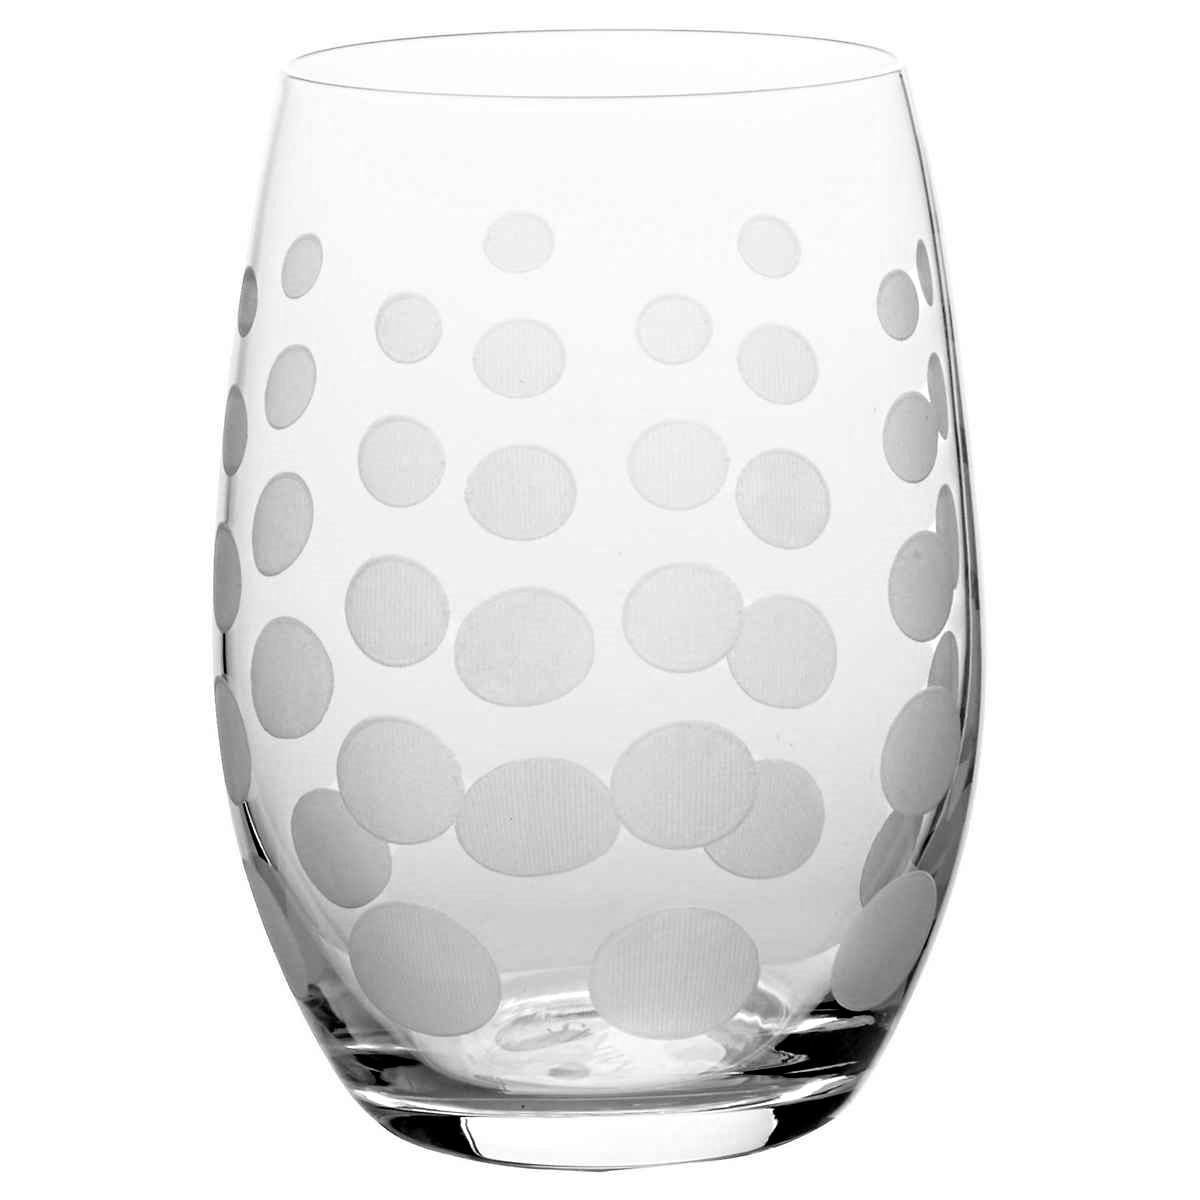 Mikasa Cheers Stemless Etched Wine Glasses, Fine European Lead-Free Crystal, 17-Ounces for Red or White Wine - Set of 6 by Mikasa (Image #6)